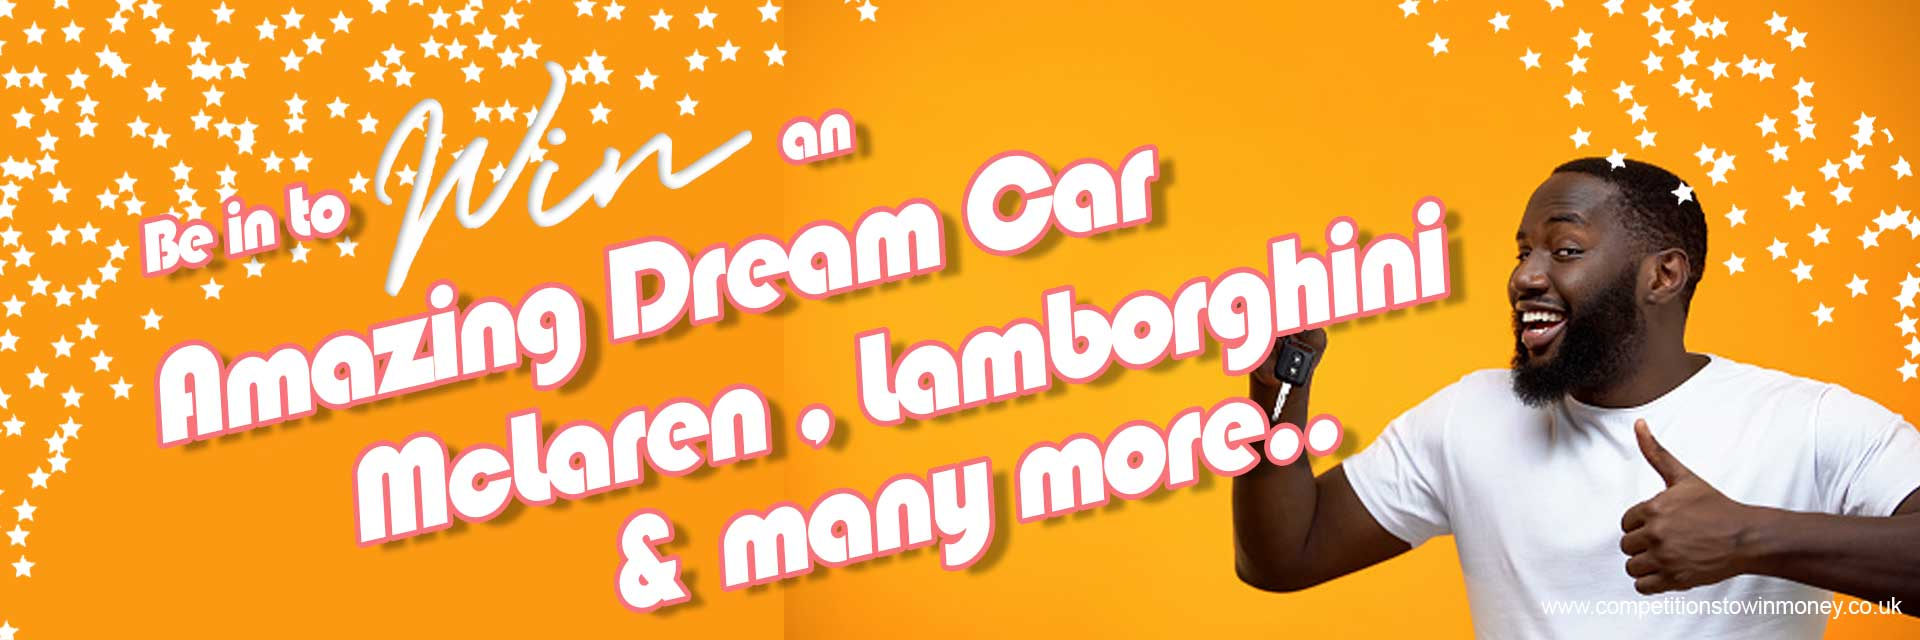 Competitions to Win a Dream Car